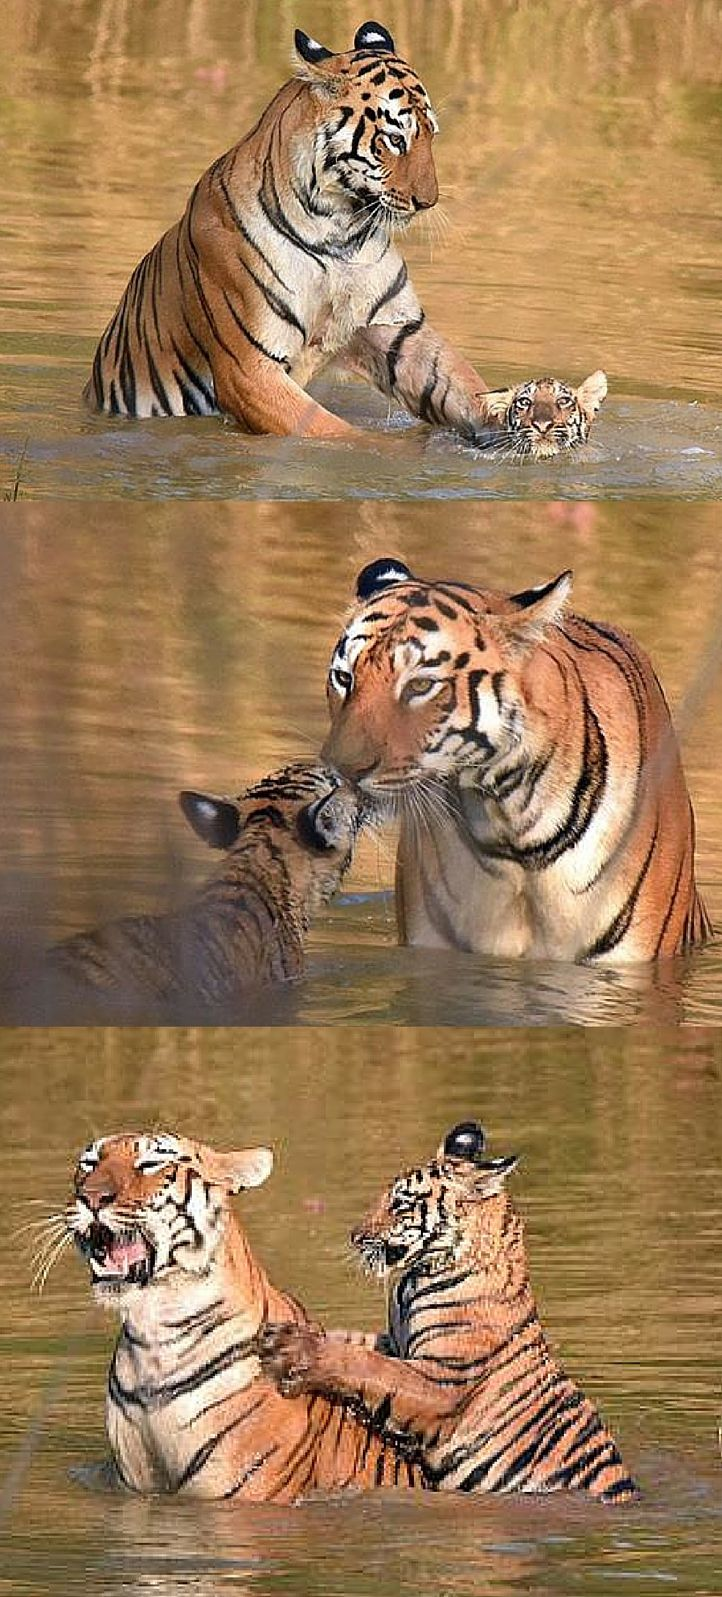 This mother tiger is extremely patient trying to teach her cub about bath time.